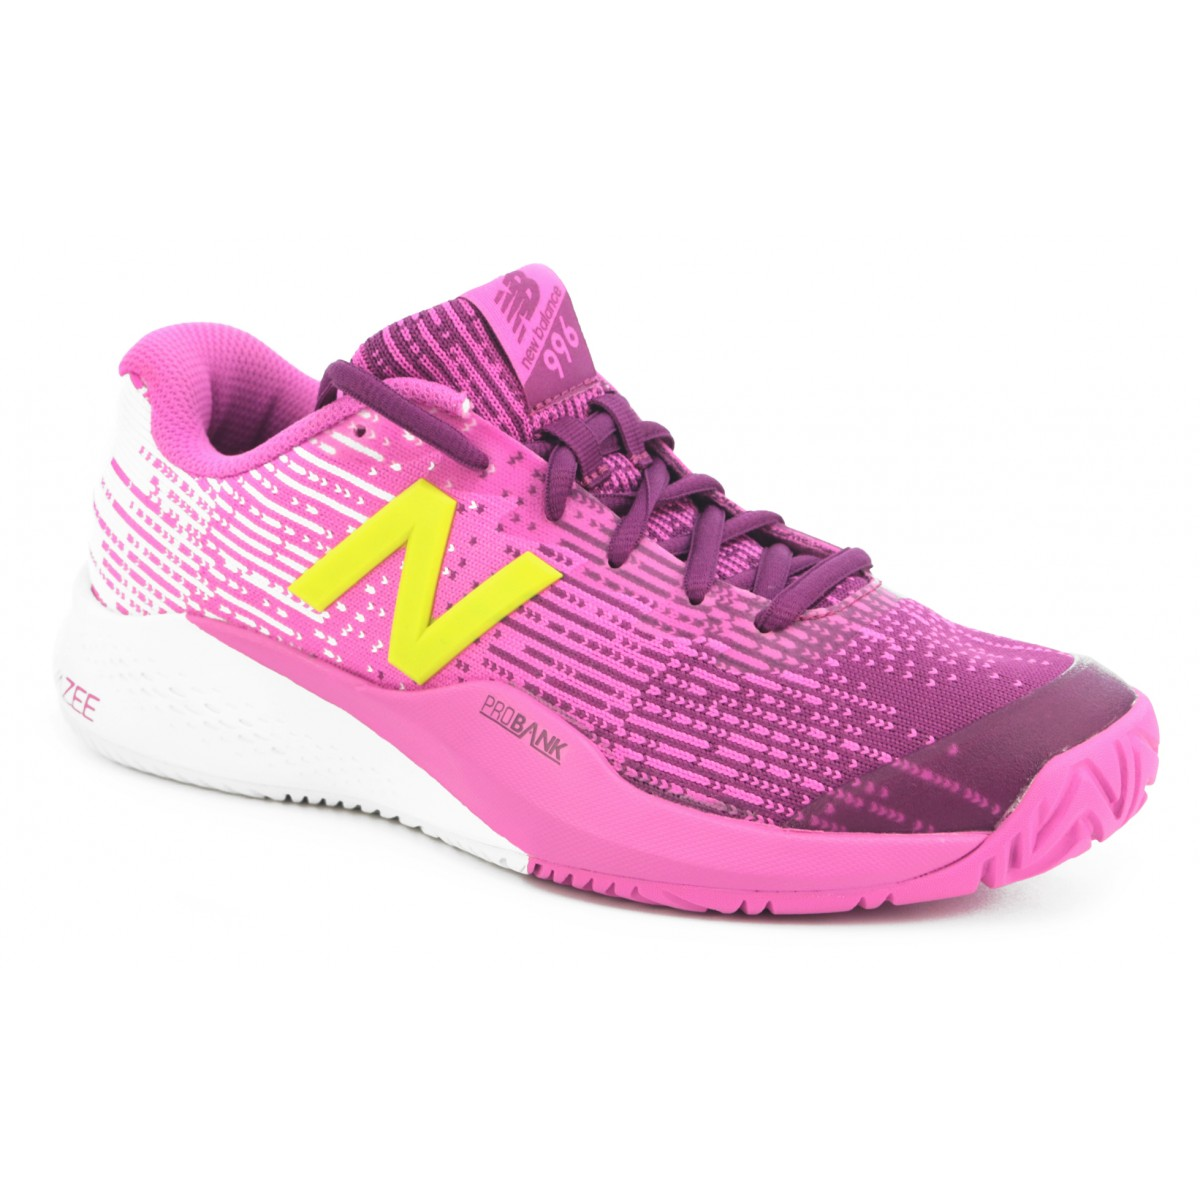 huge discount 4acd2 6198c CHAUSSURES NEW BALANCE FEMMES WC996 V3 +